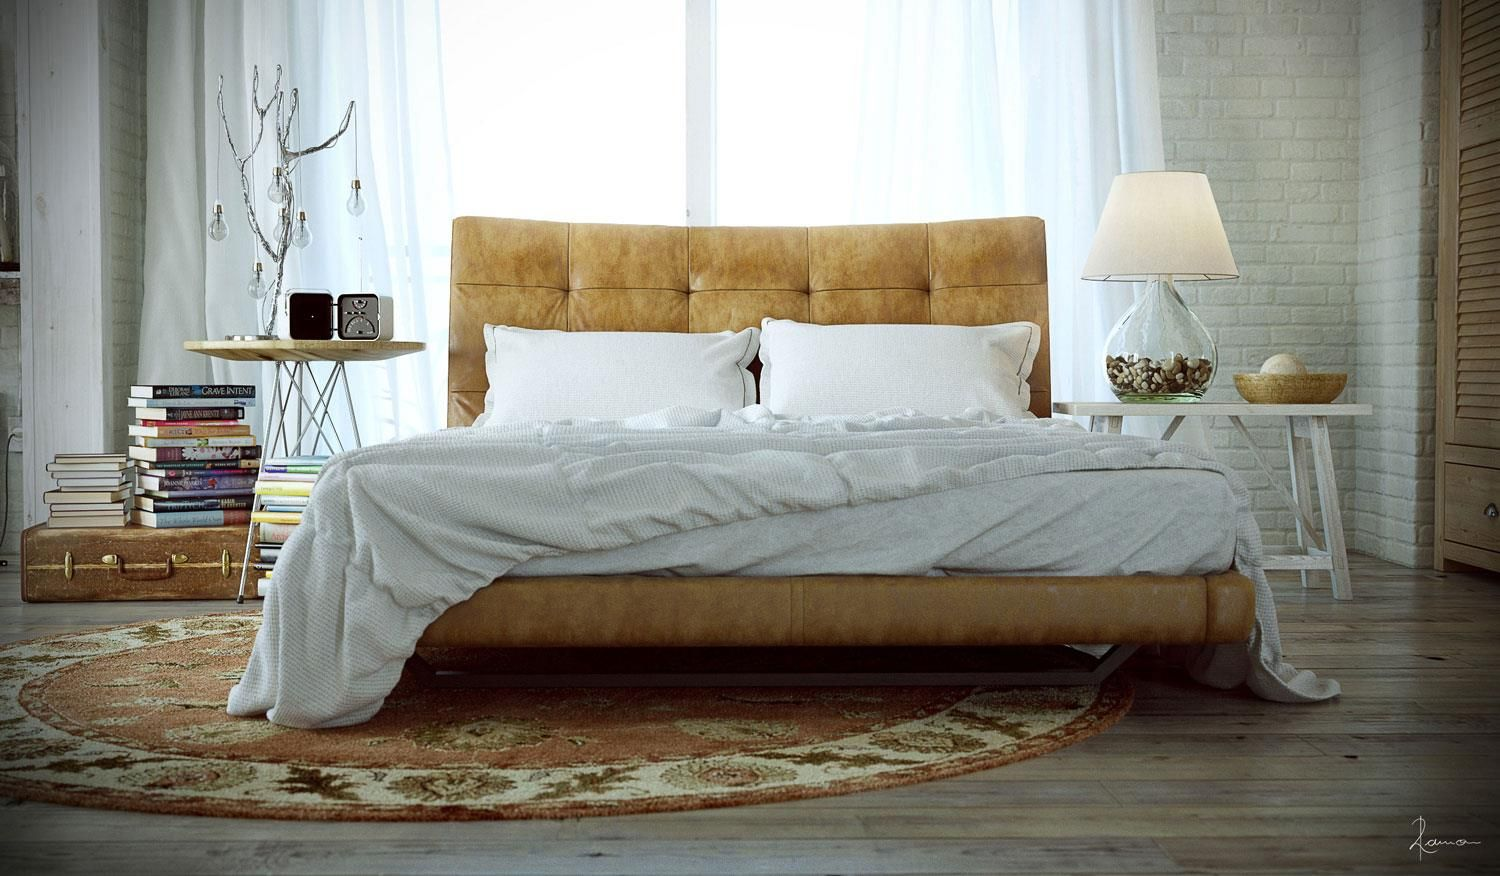 """Bedroom Furniture Spot ramon zancanaro - """"the g-spot of the bed and art"""" 